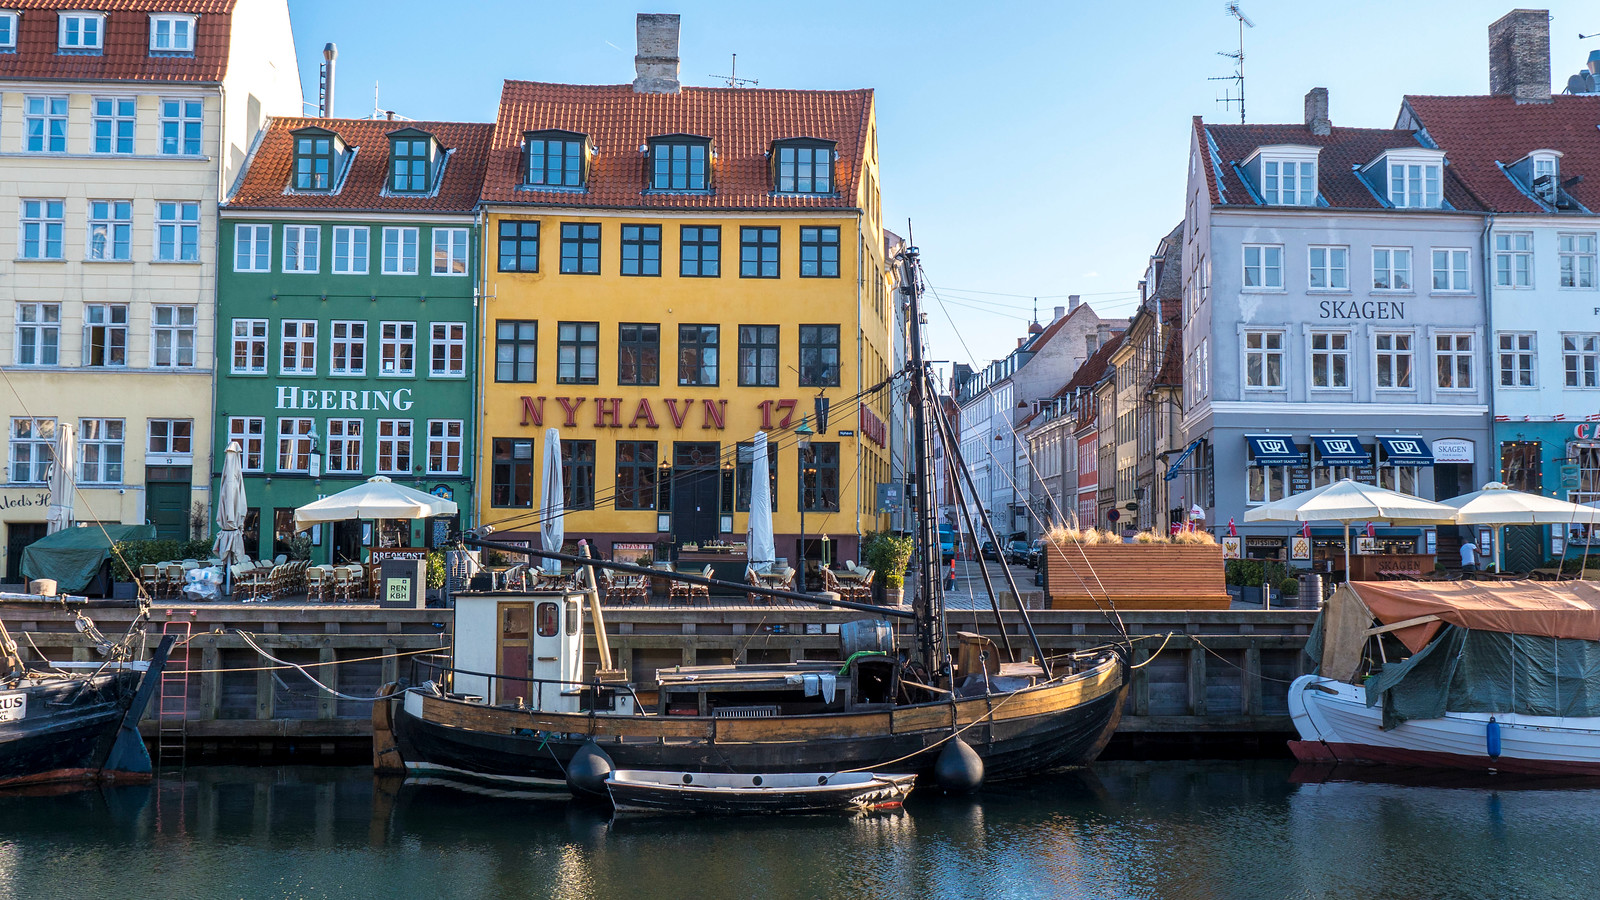 3 days in Copenhagen - Nyhavn - Famous and iconic Copenhagen attraction